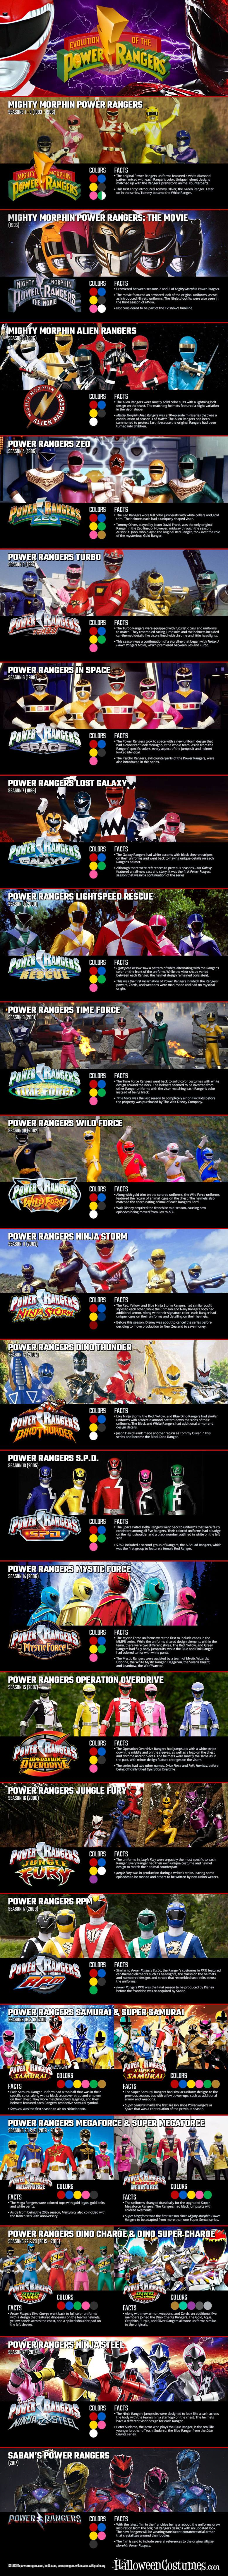 Power-Rangers-Evolution-Infographic.jpg